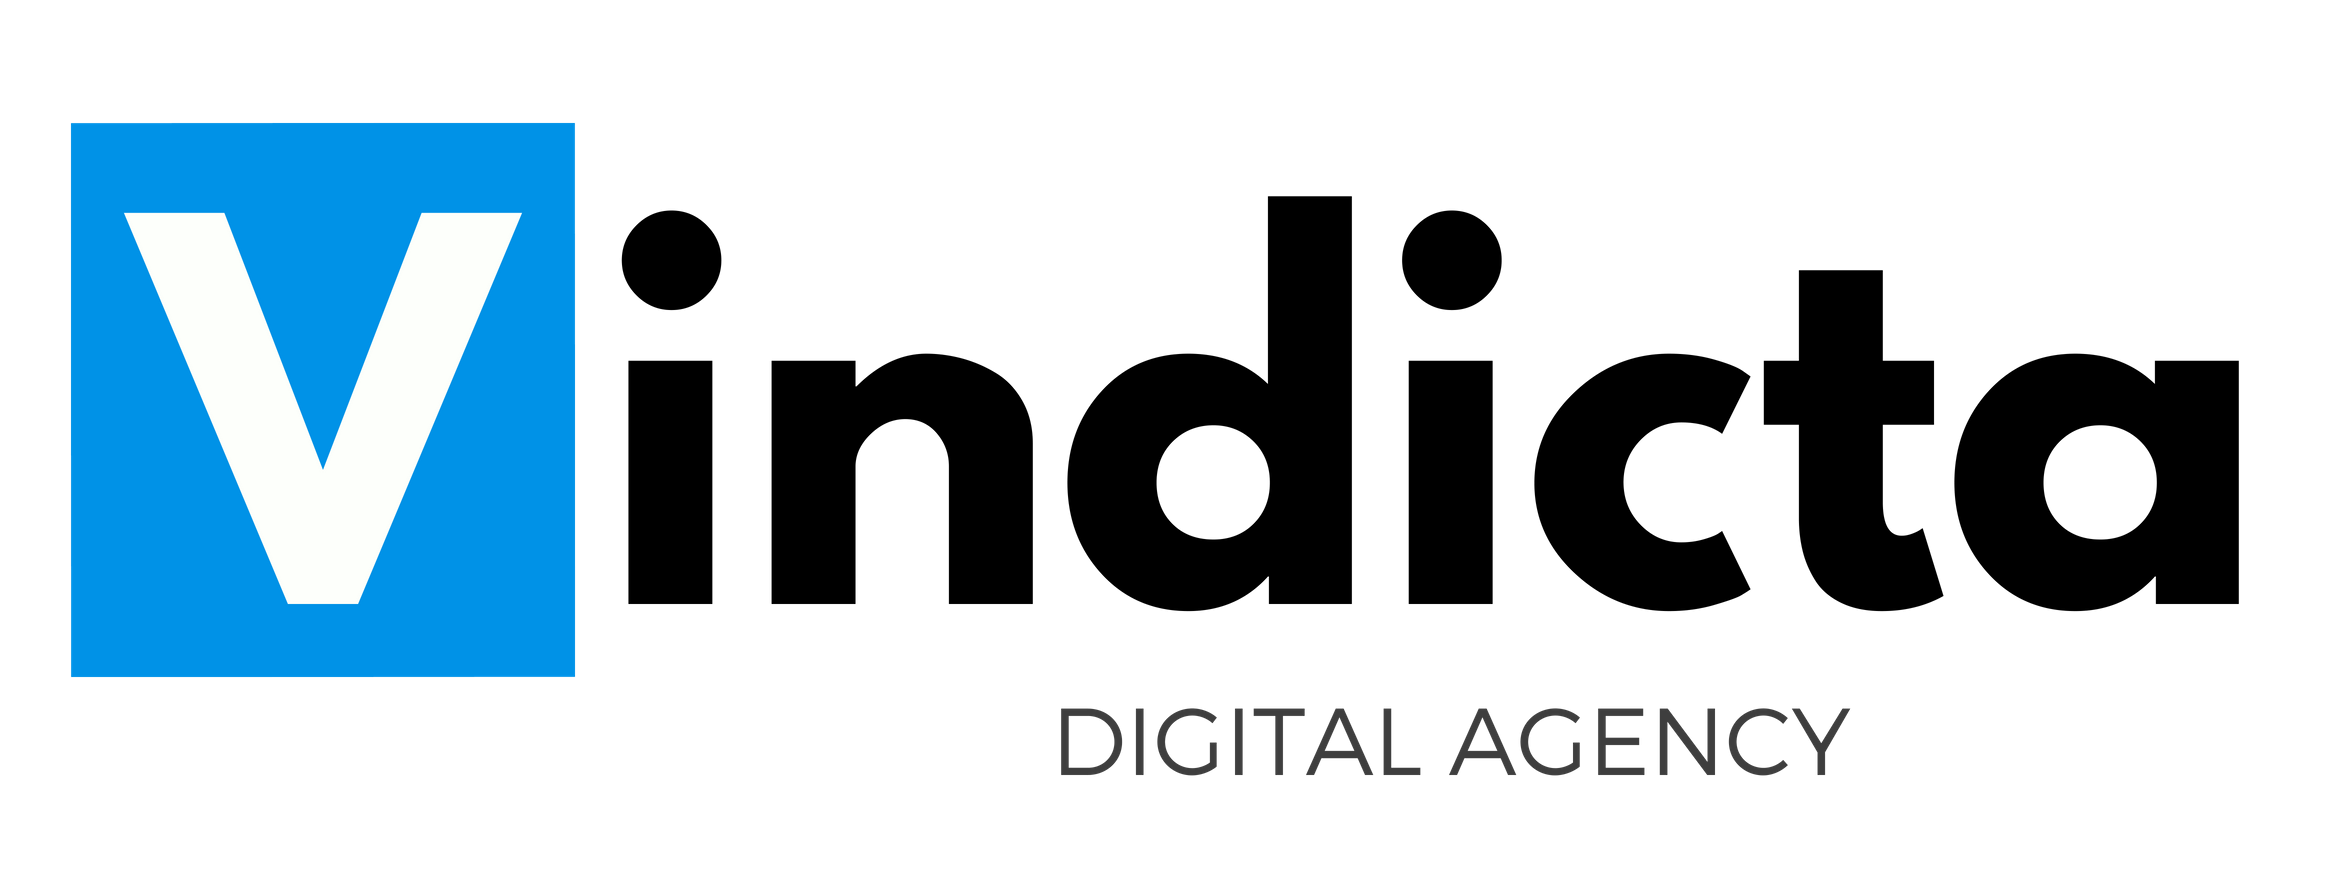 Vindicta Digital – Digital Marketing, Web Design, SEO Agency